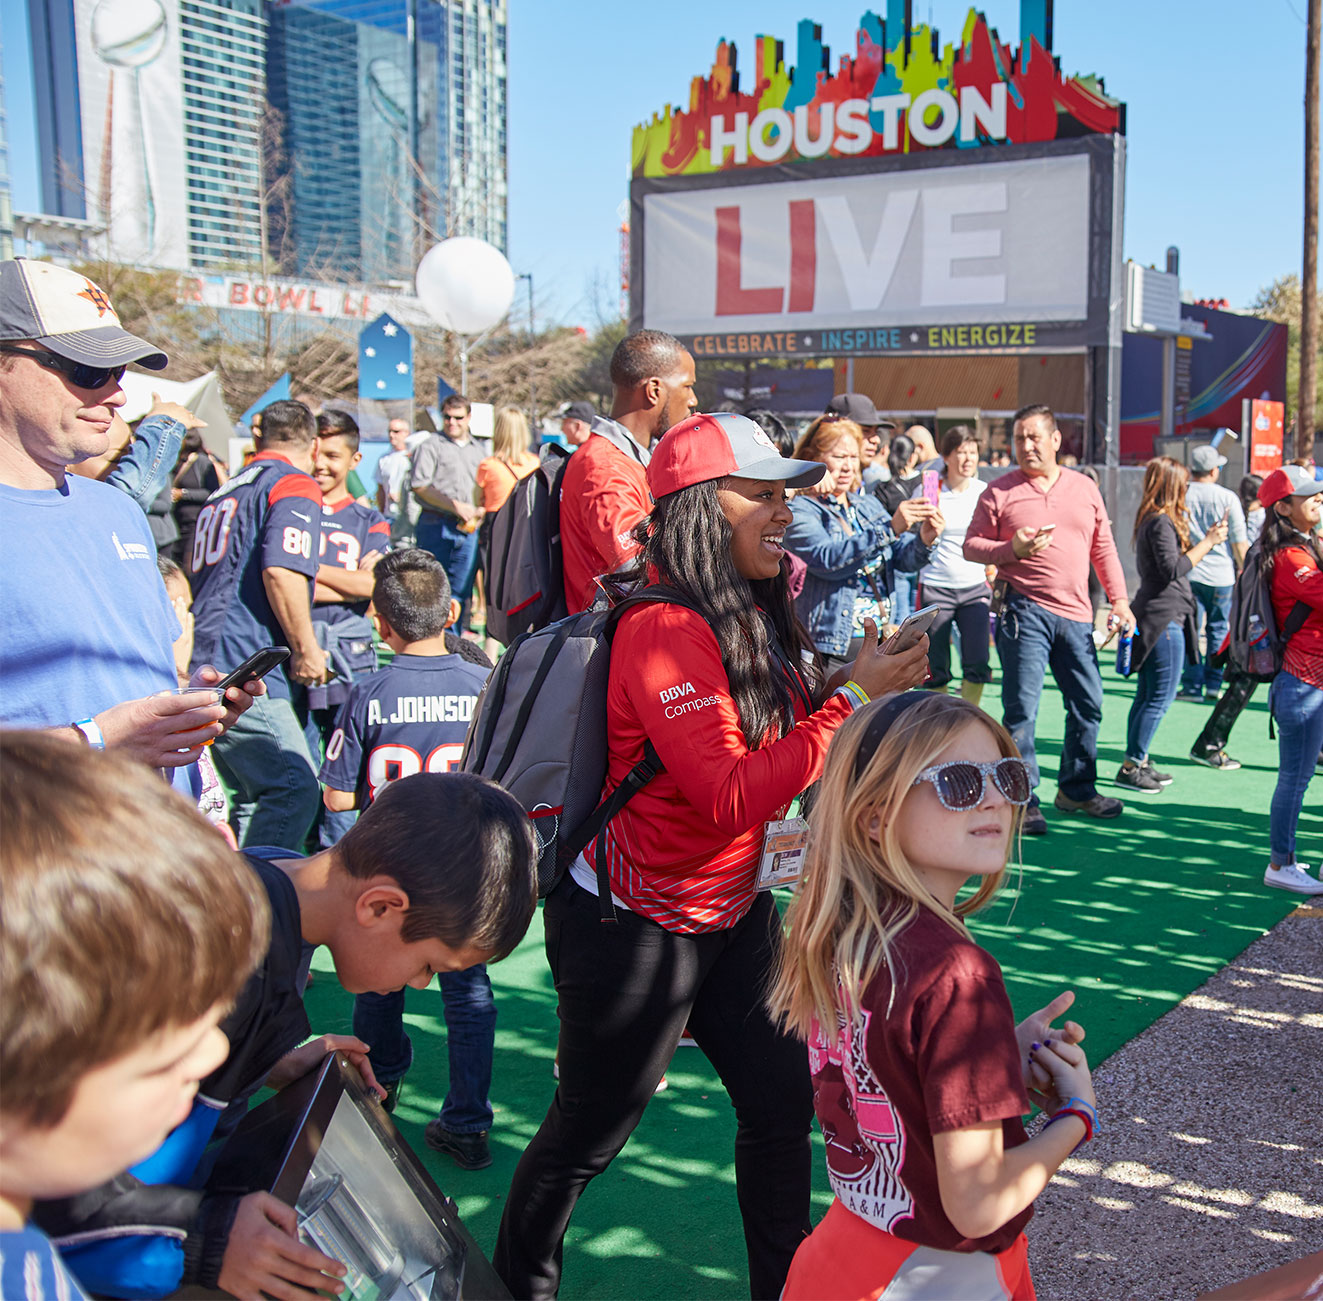 Houston LIVE-Super Bowl LIVE fan experience